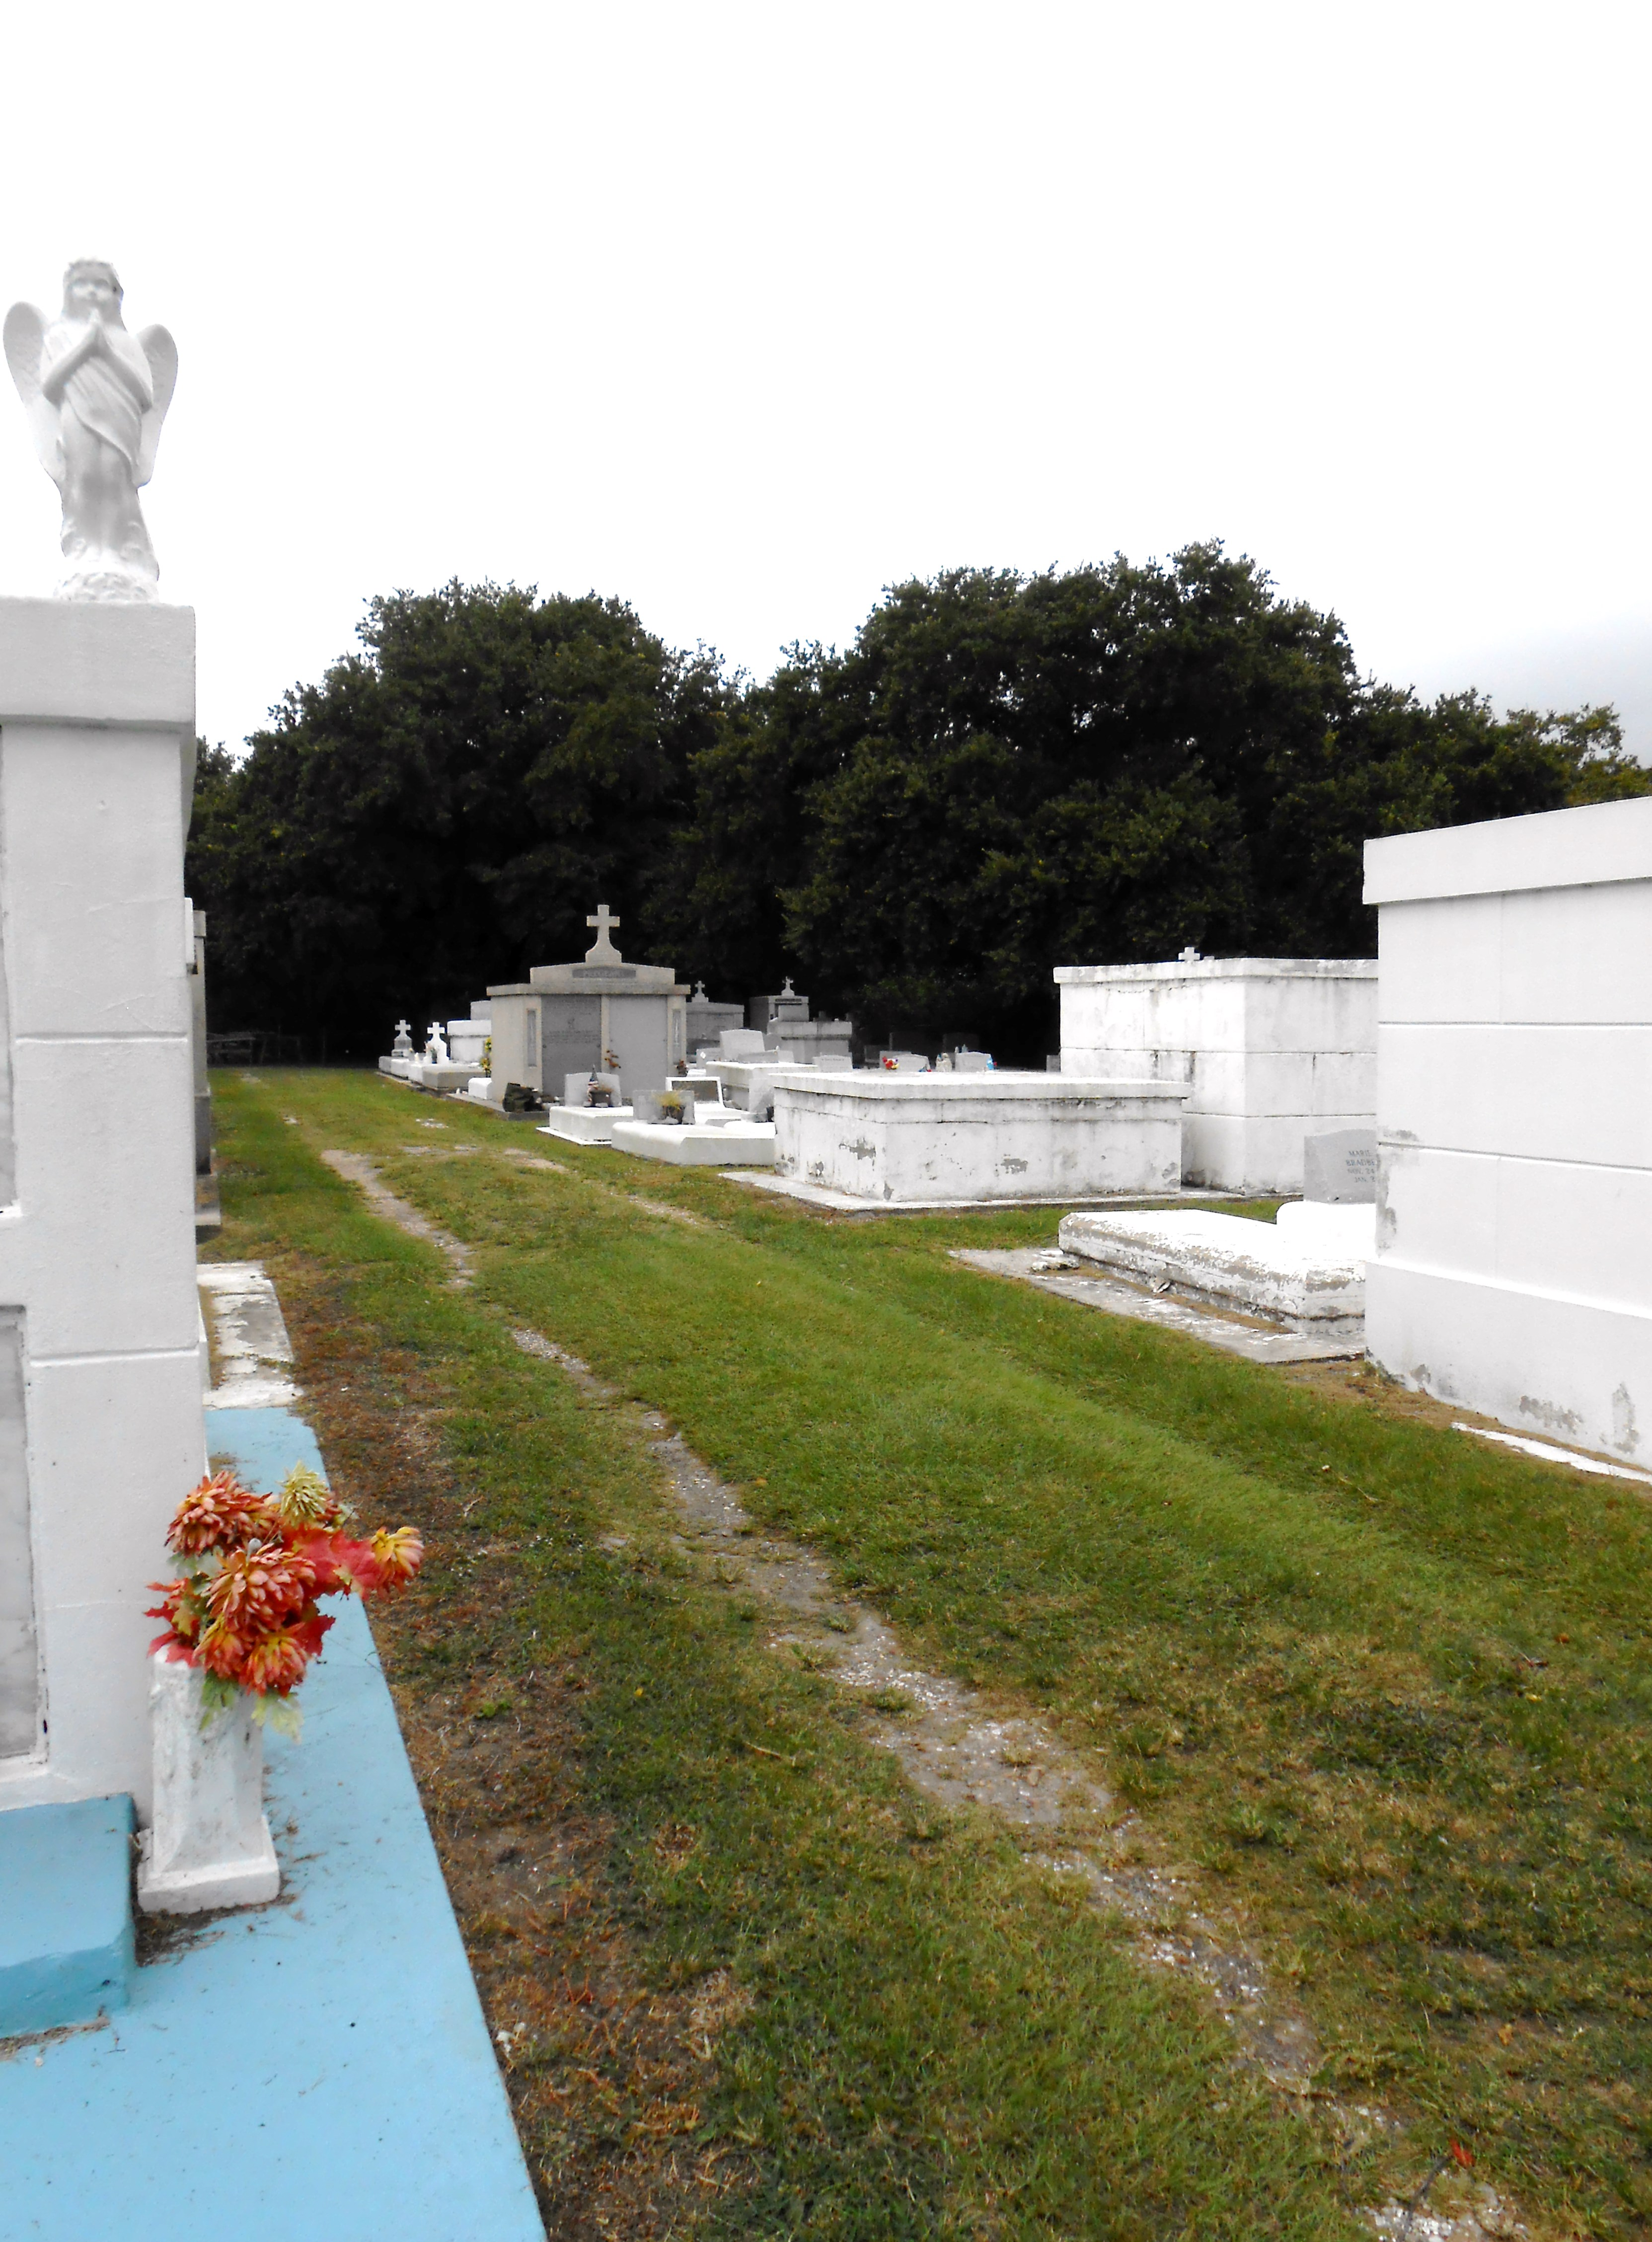 Our Lady of the Isle Catholic Cemetery